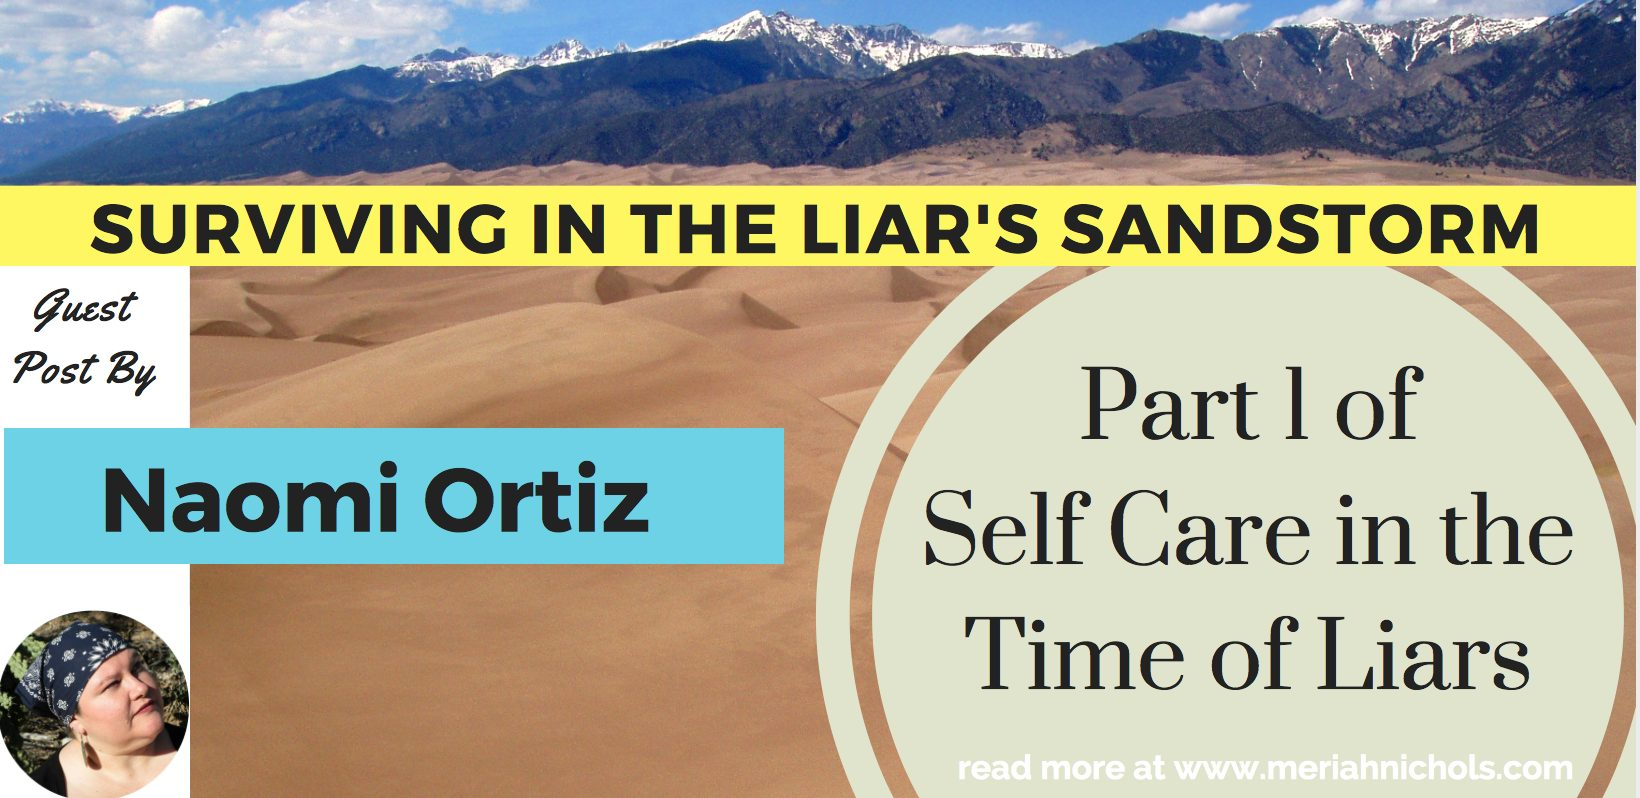 Self Care in the Time of Liars: Part 1: Surviving in the Liars Sandstorm, Guest Post by Naomi Ortiz